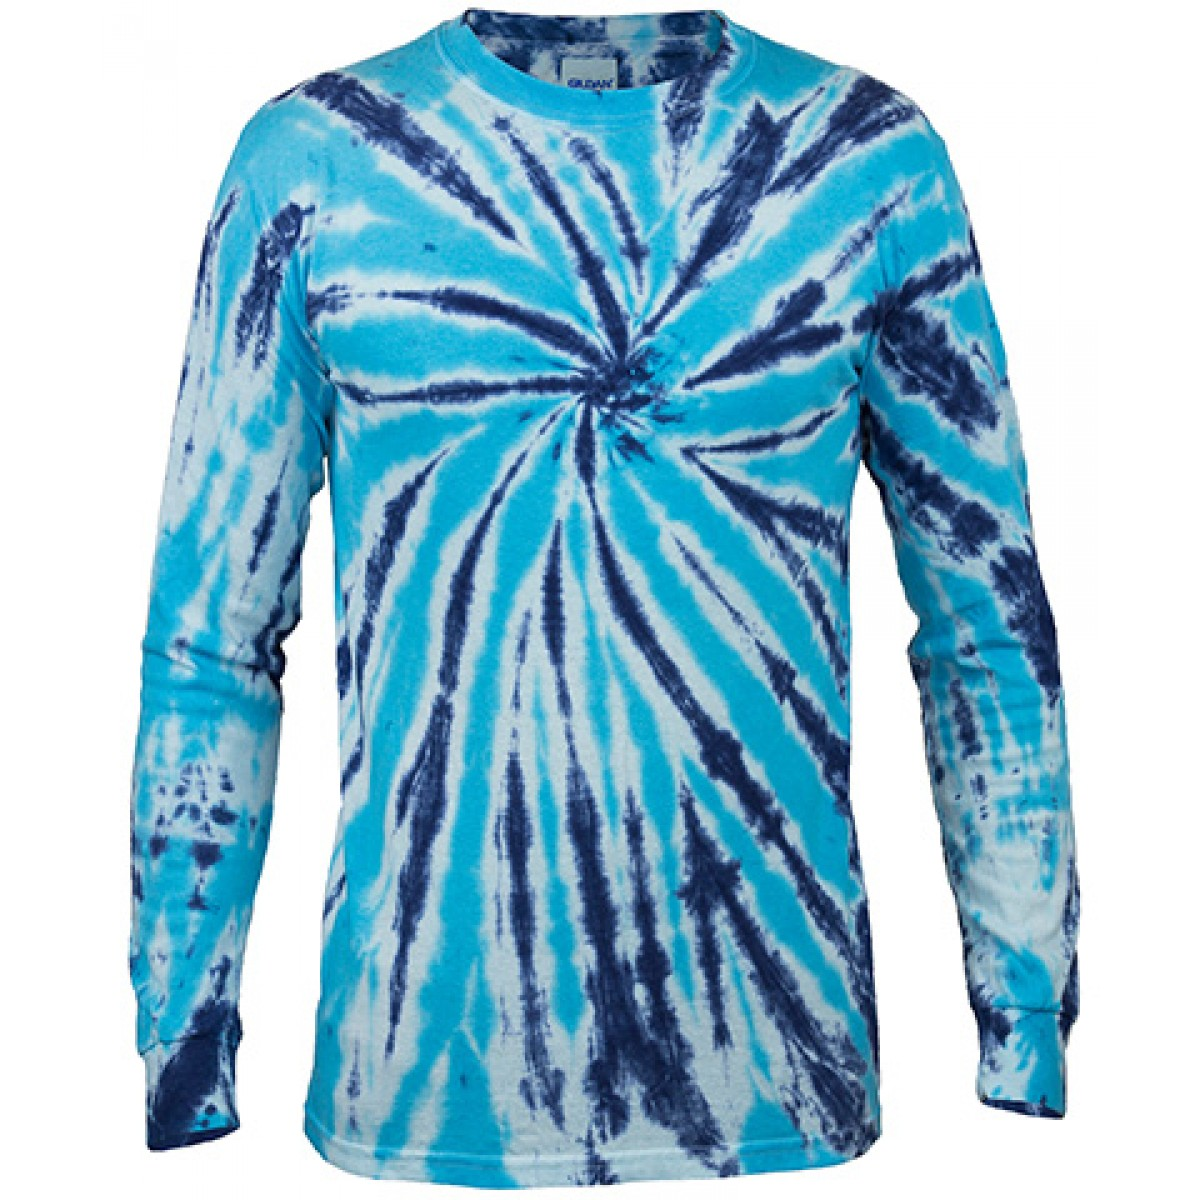 Multi Color Tie-Dye Long Sleeve Shirt -Royal Blue-YM